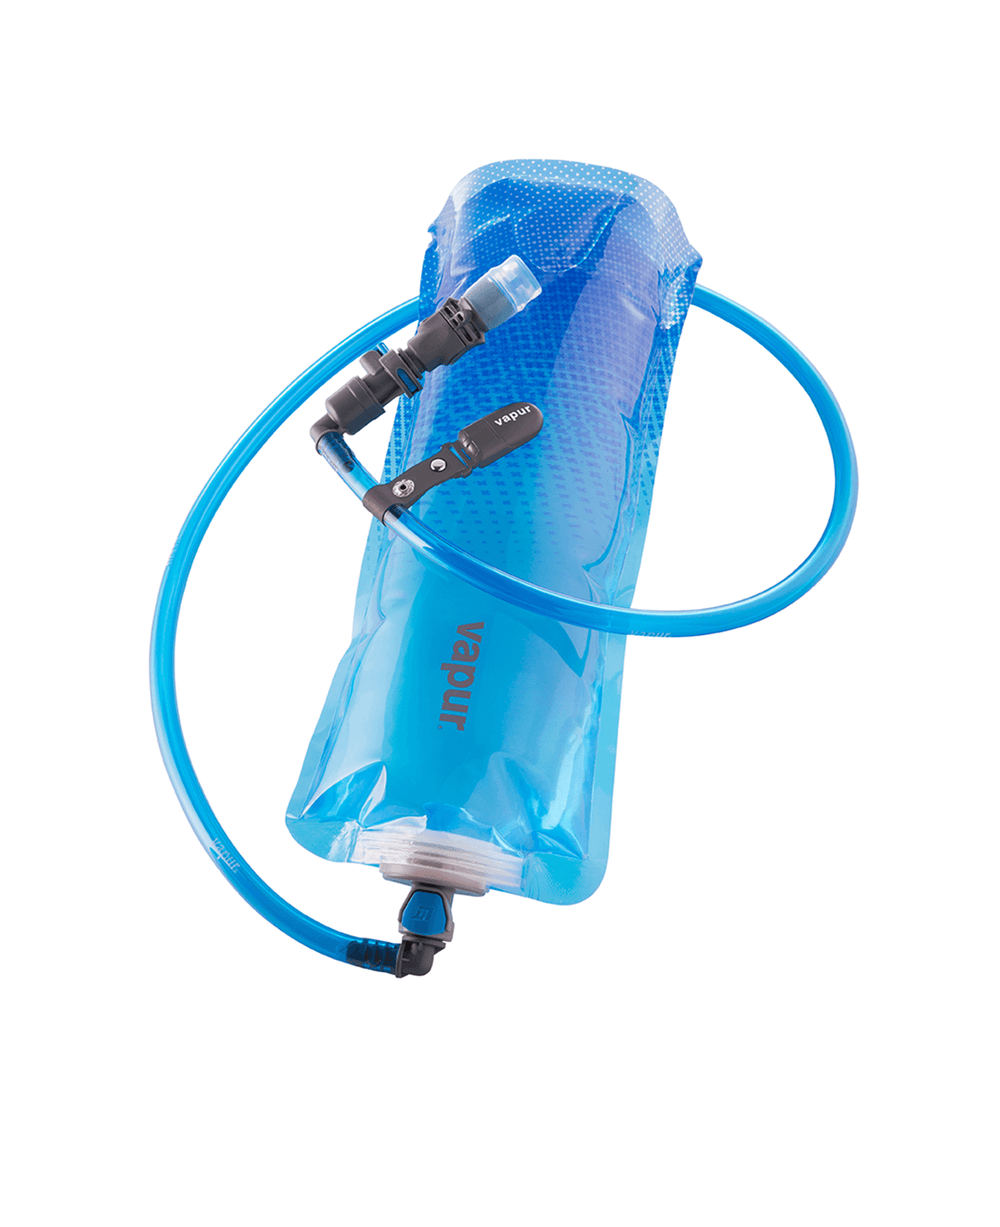 Vapur Drinklink Hydration Tube System With 1.5L Anti-Bottle Shades, Translucent Blue, 1.5 l Alt1